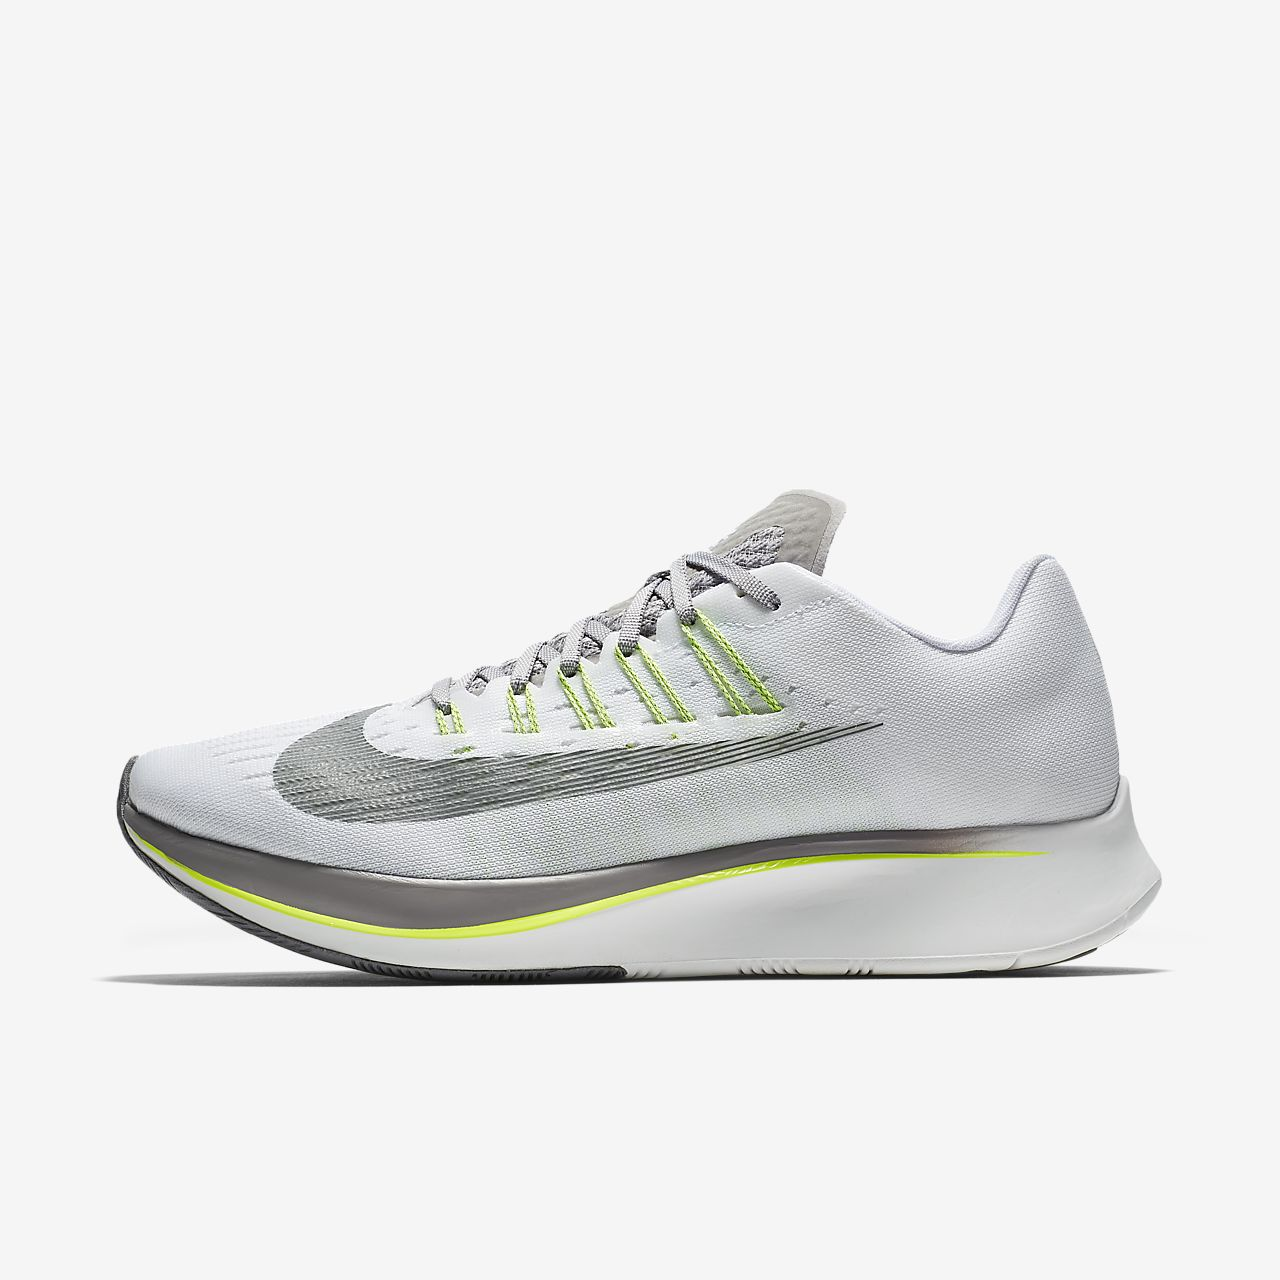 5586e4865fab9 Nike Zoom Fly Men s Running Shoe. Nike.com